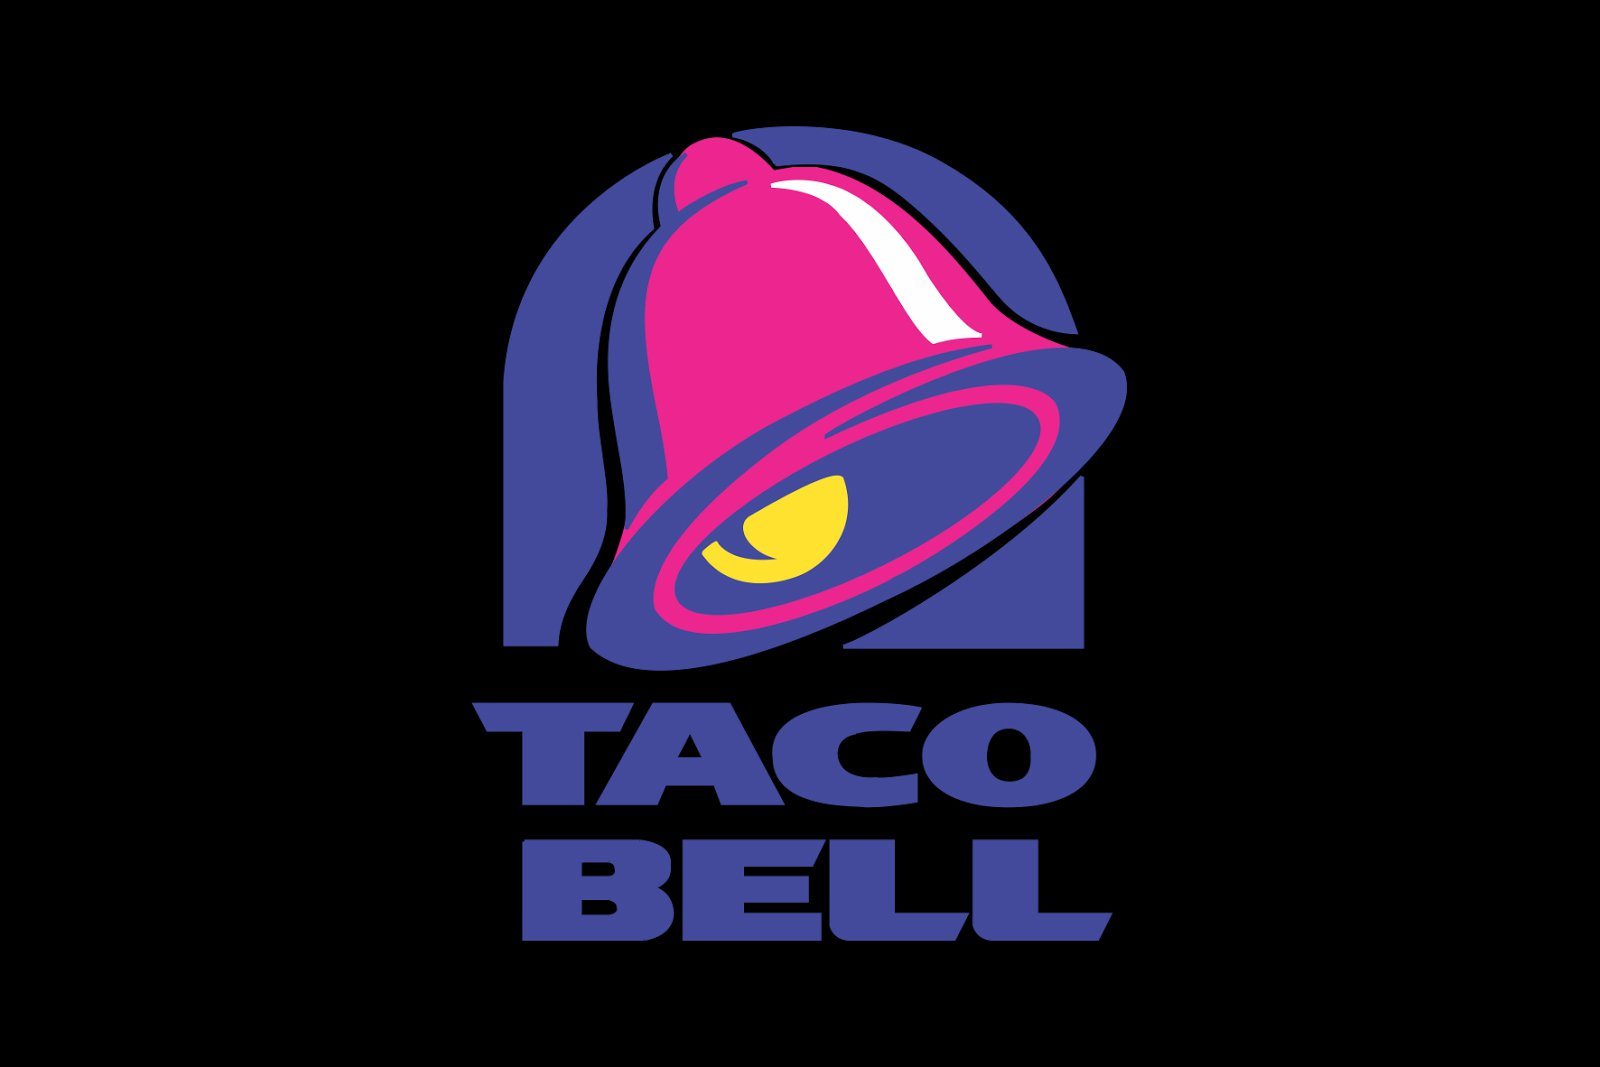 Taco Bell Logo Taco Bell Logo Taco Bell Symbol Meaning History And Evolution